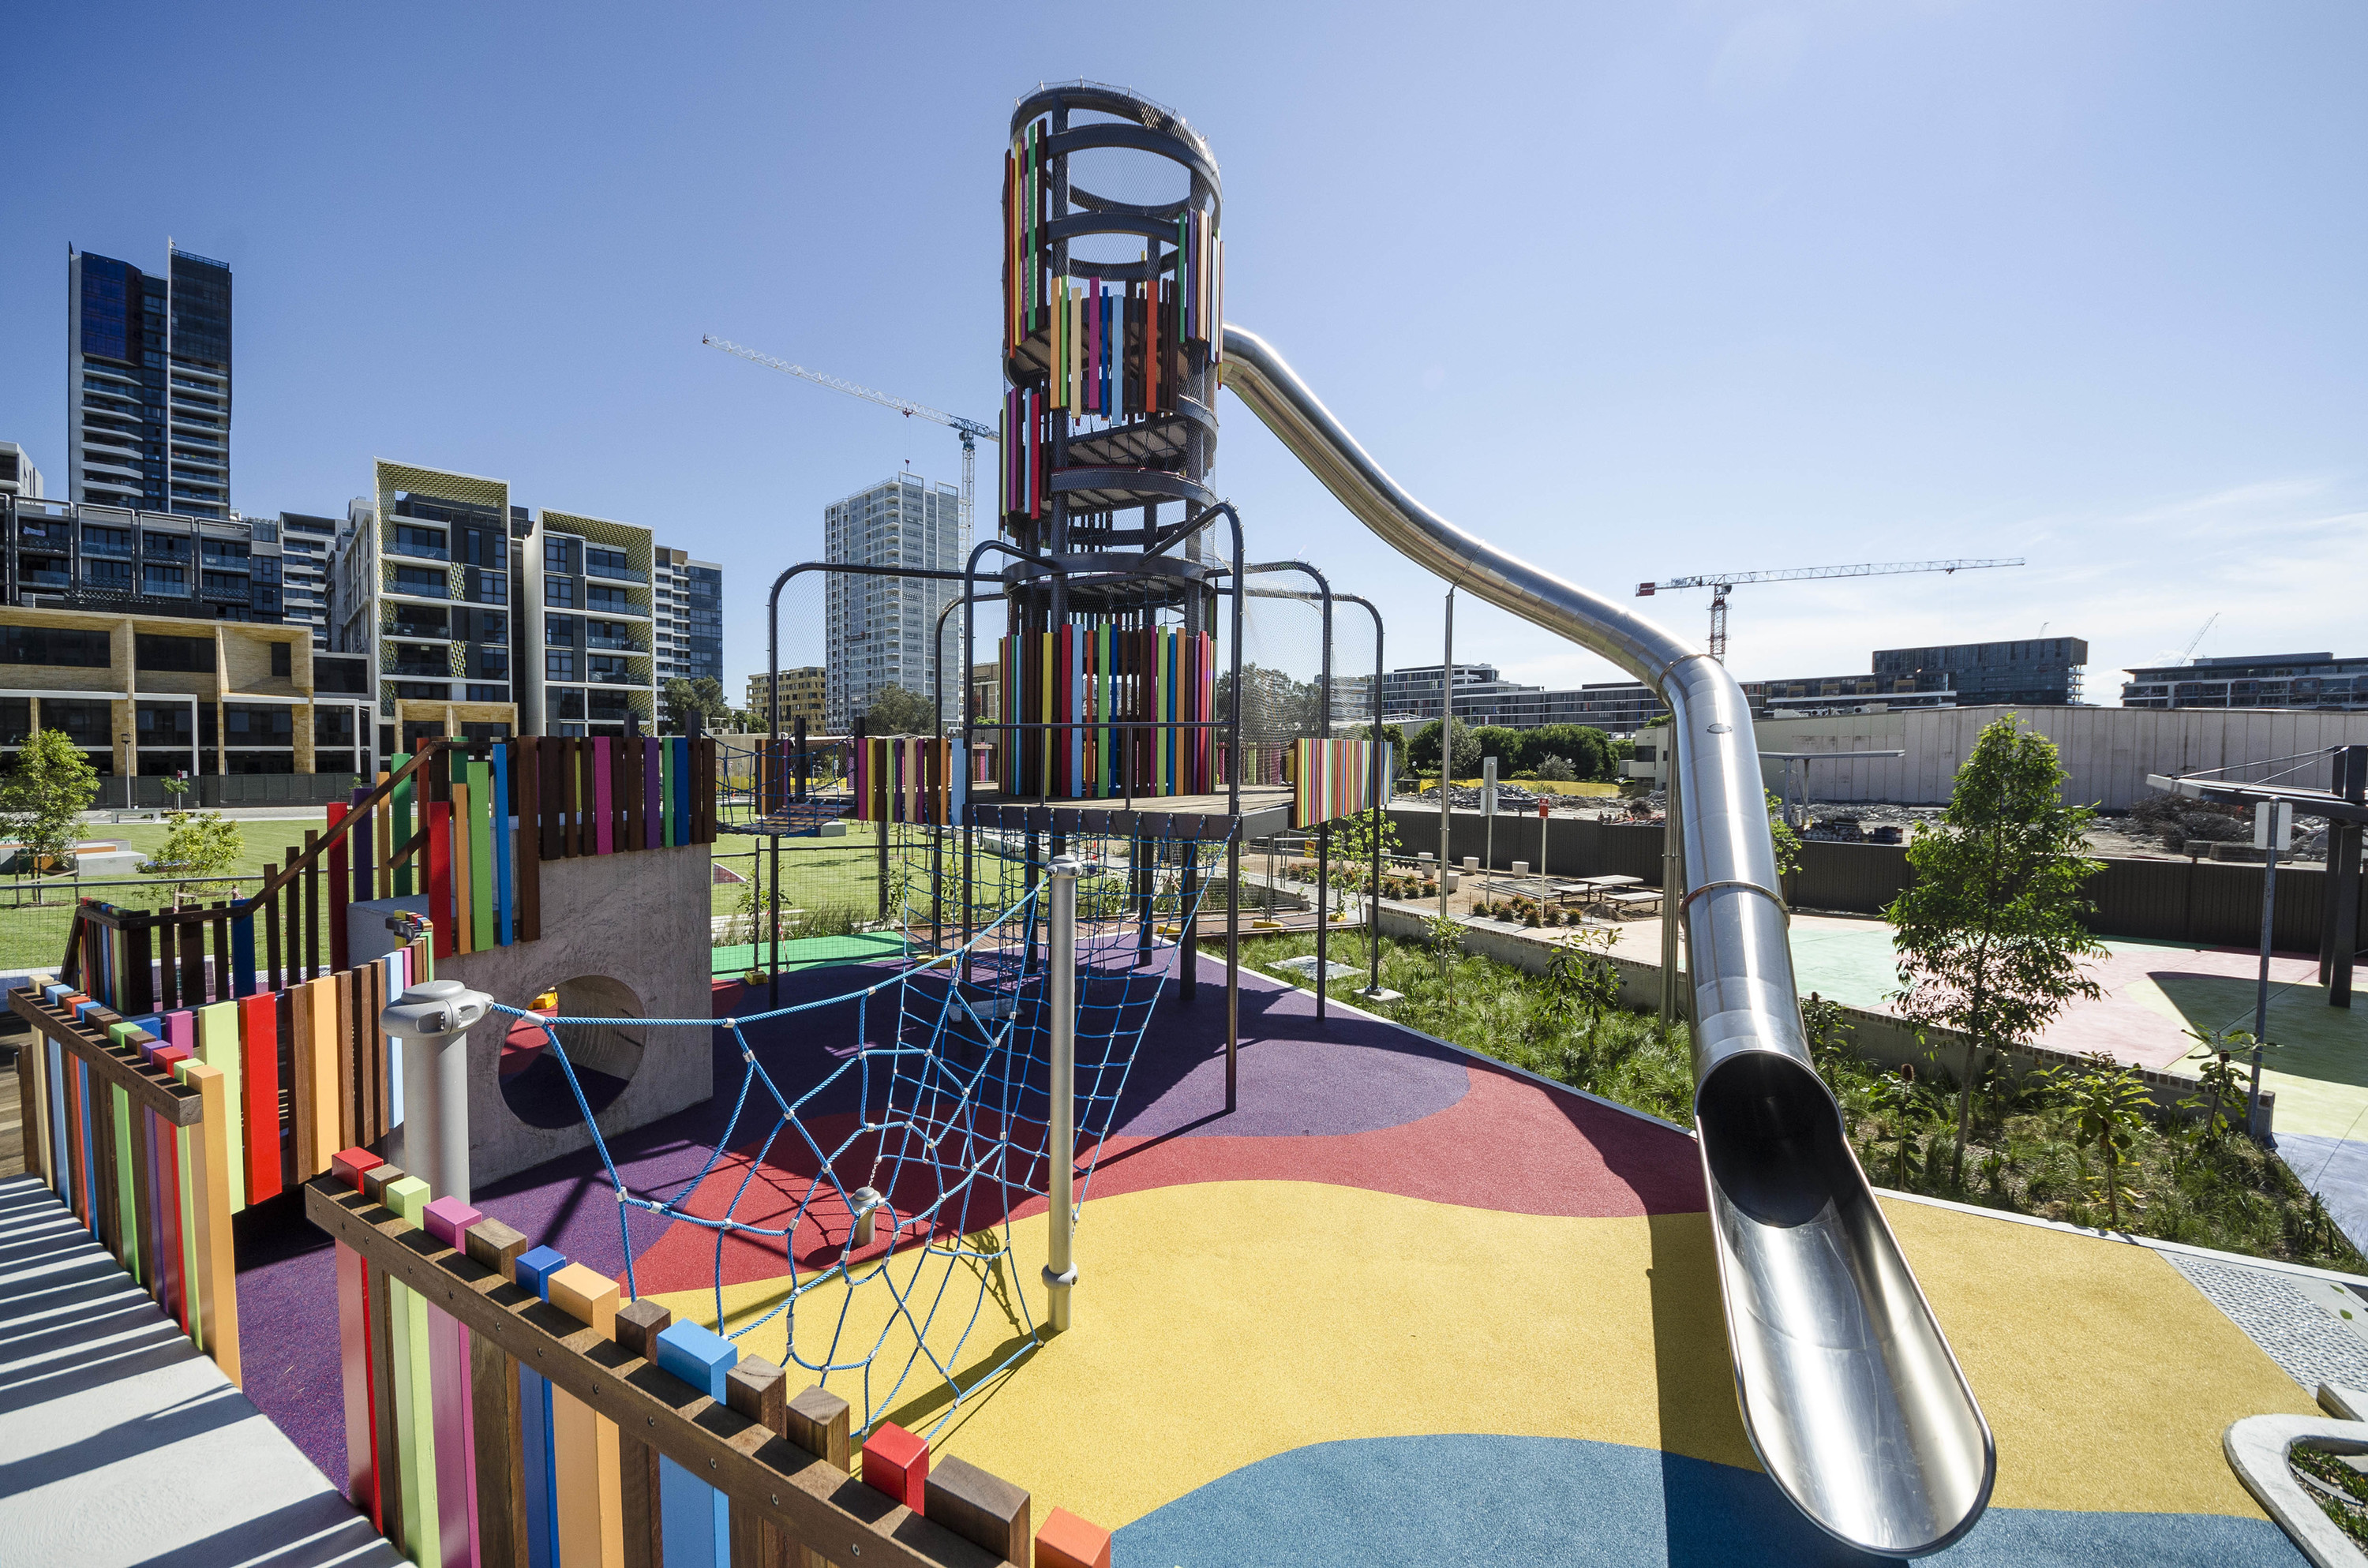 Importance Of School Playground Equipment | Blog Xpress - Tips ...